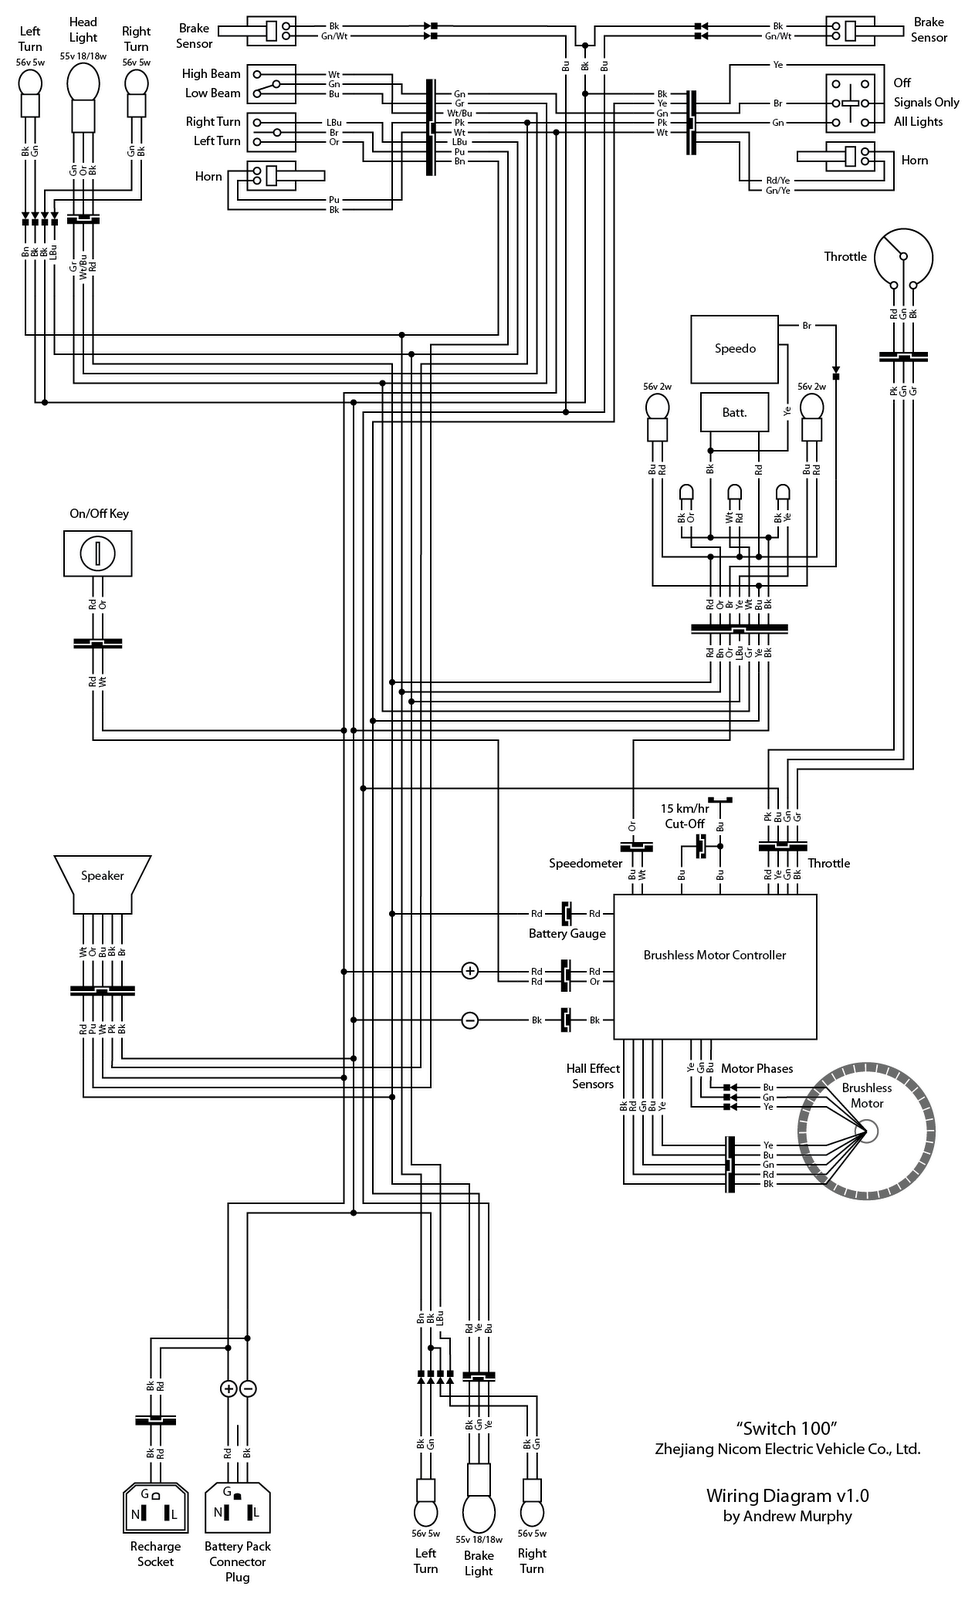 Switch 100 Wiring Diagram v1. Download a PDF here:  https://docs.google.com/open?id=0B2ihJ04Ijch5U21MSE9uWVJUbDA